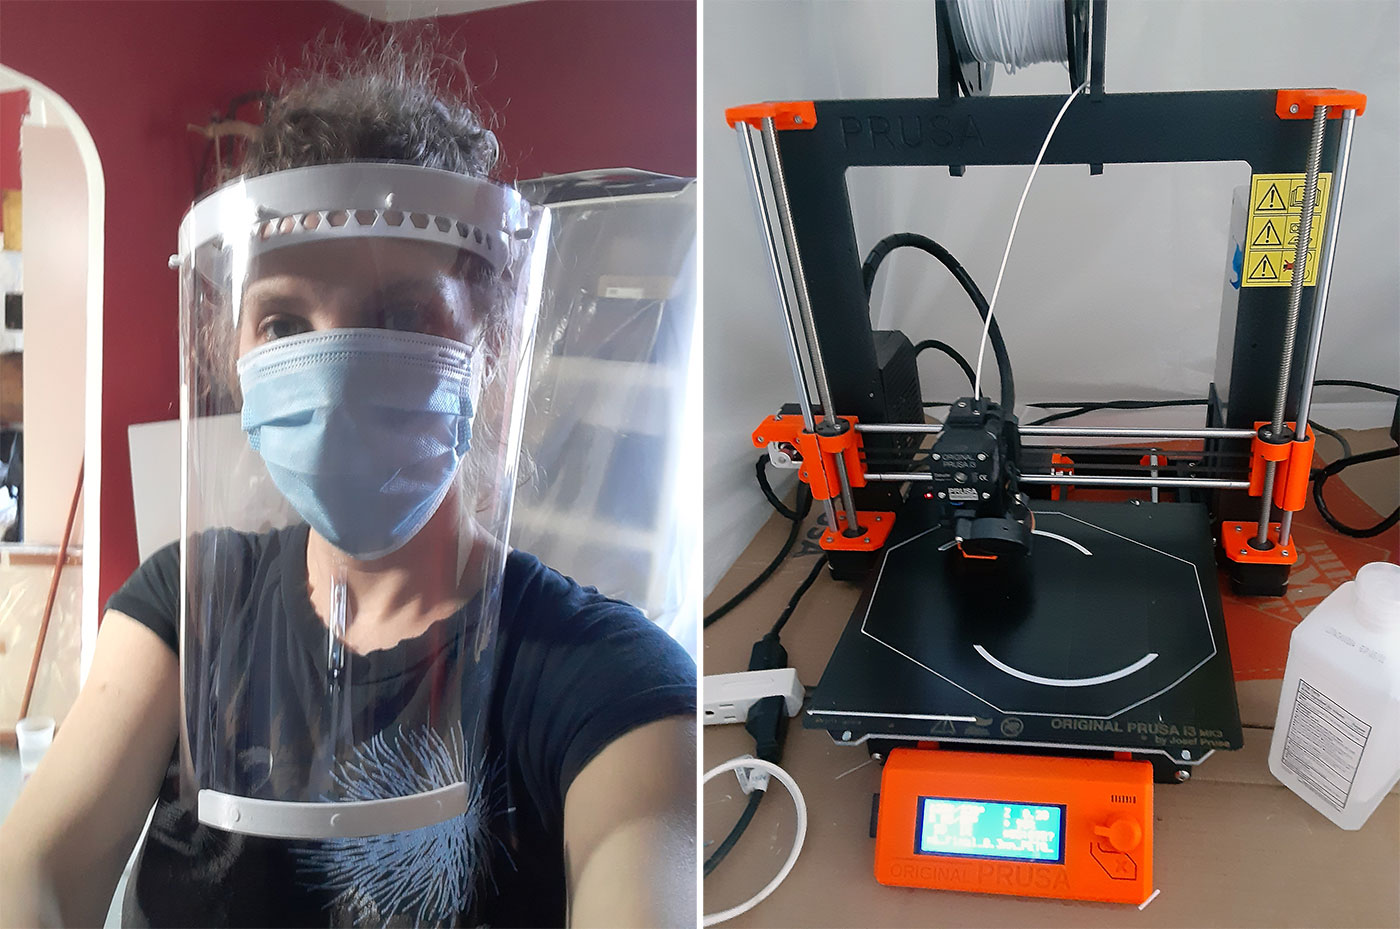 Luba Drozd, BFA Computer Graphics '06, making face shields with the 3D printer in her apartment (courtesy Luba Drozd)